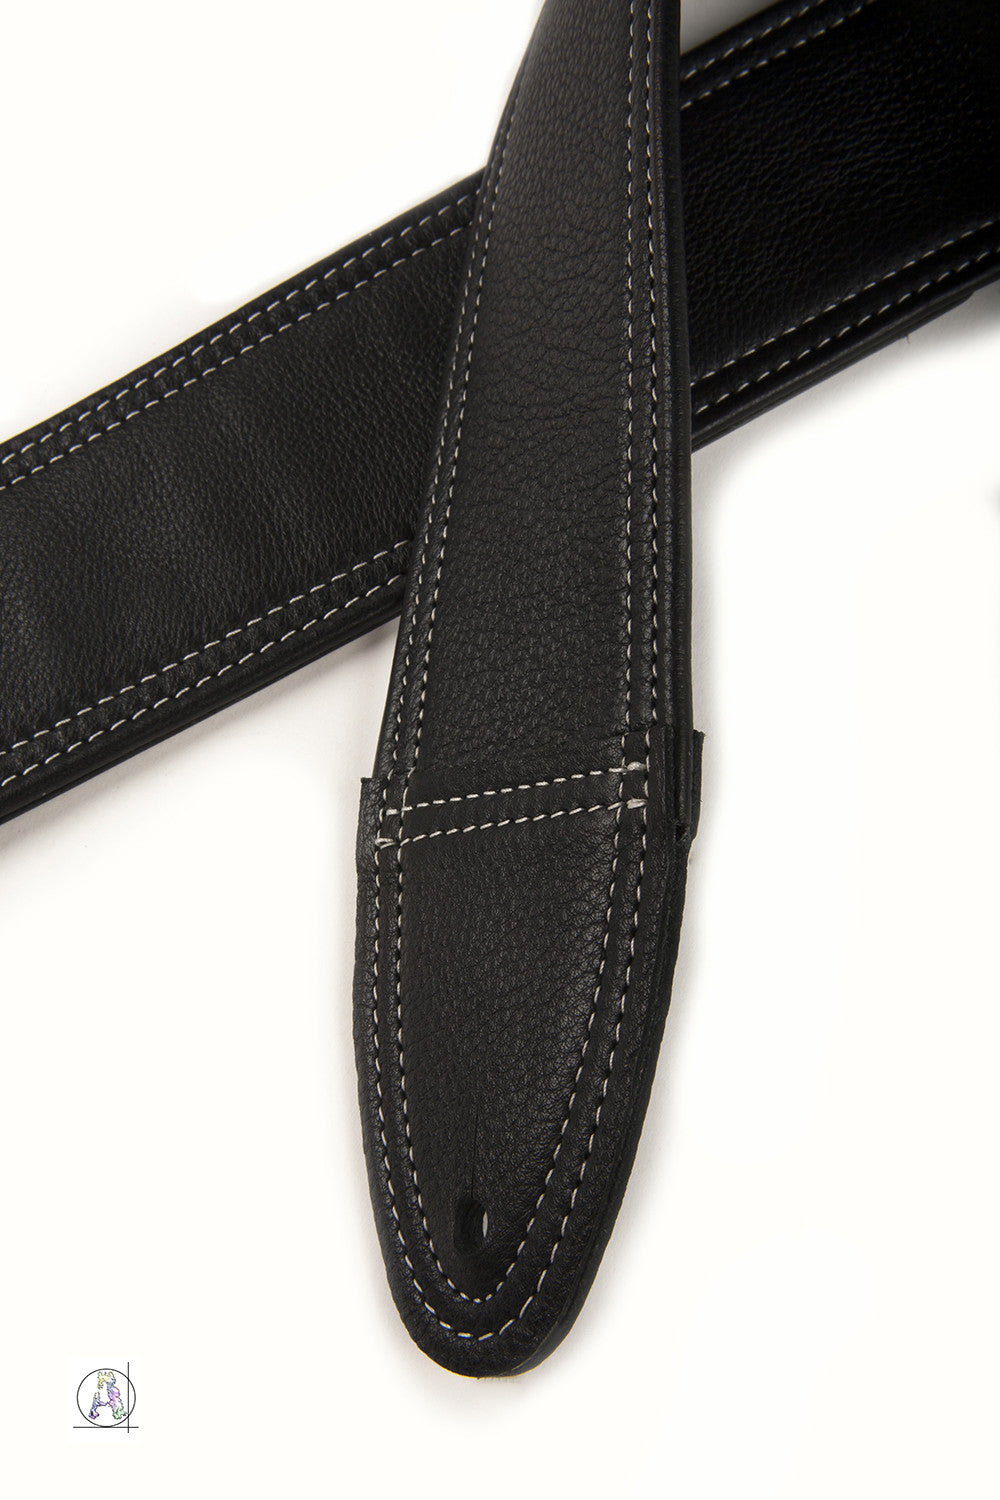 Simply Classy Black with Bone Stitching Custom Guitar Strap